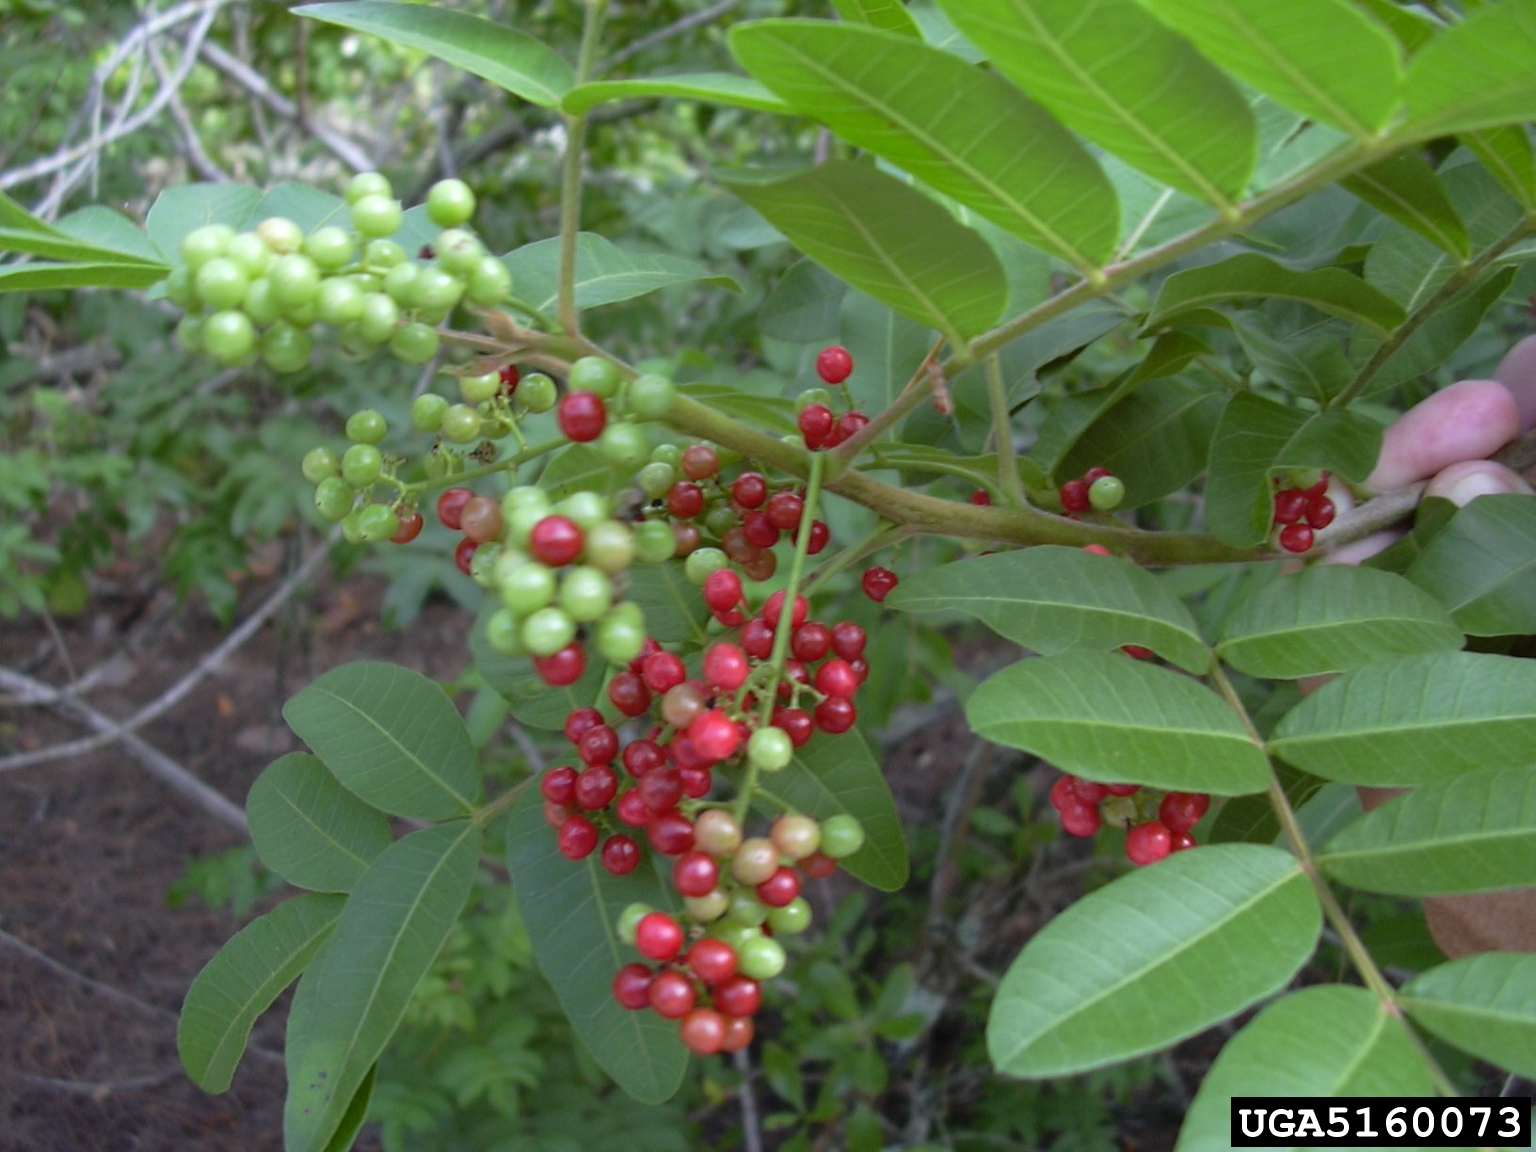 Brazilian Pepper Tree with Immature and Ripened Fruit